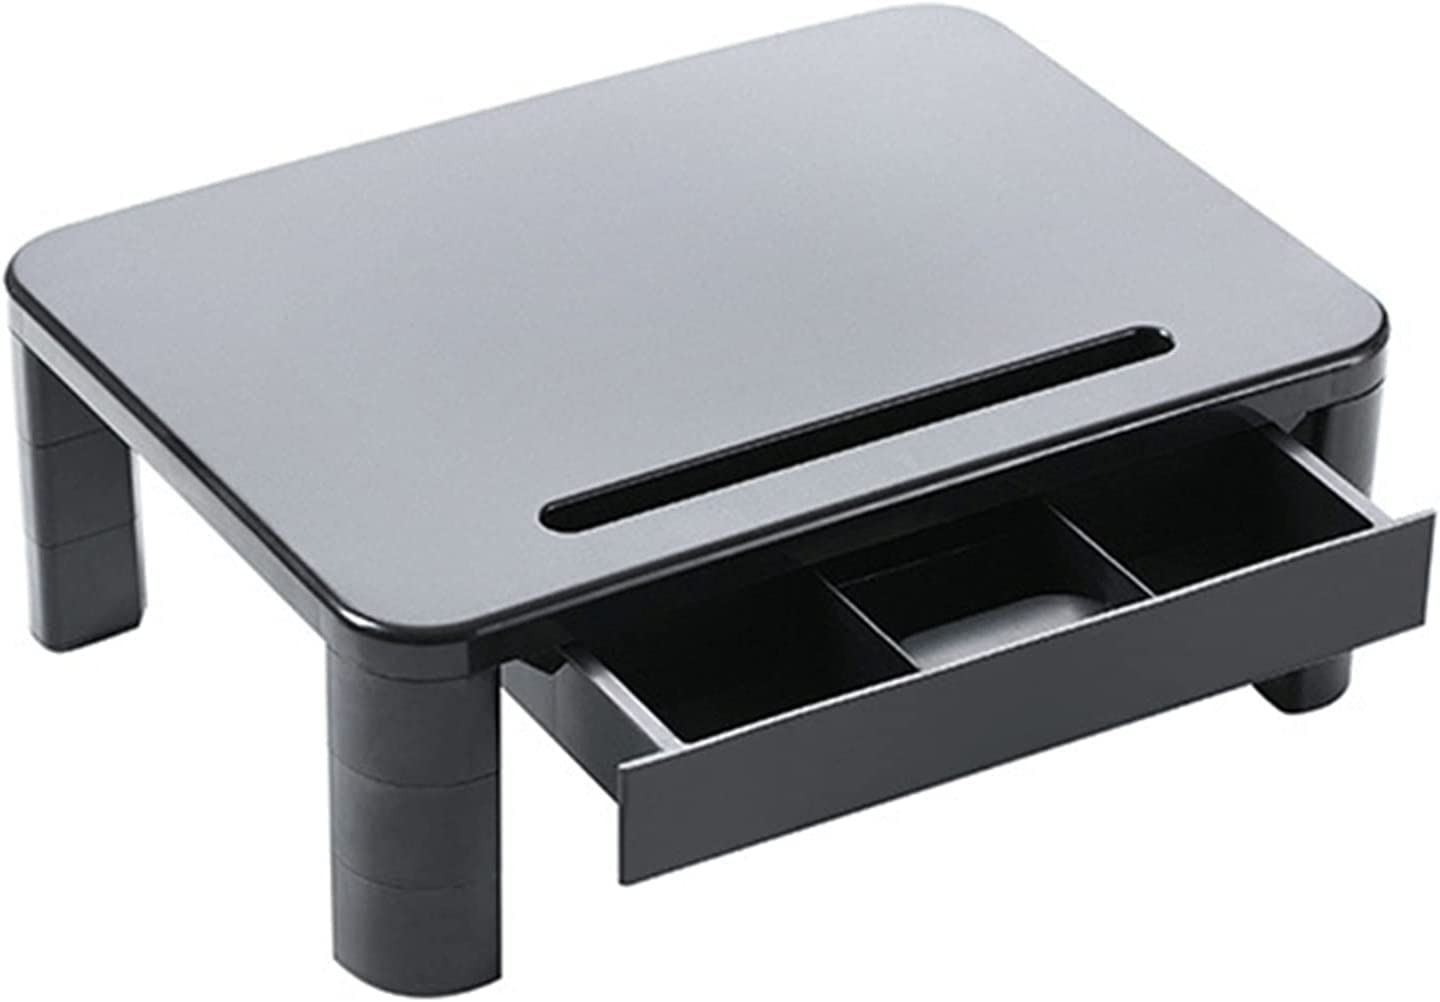 paritariny Printer Stands for Office Inventory cleanup selling sale Selling and selling Riser Home Monitor Stand w